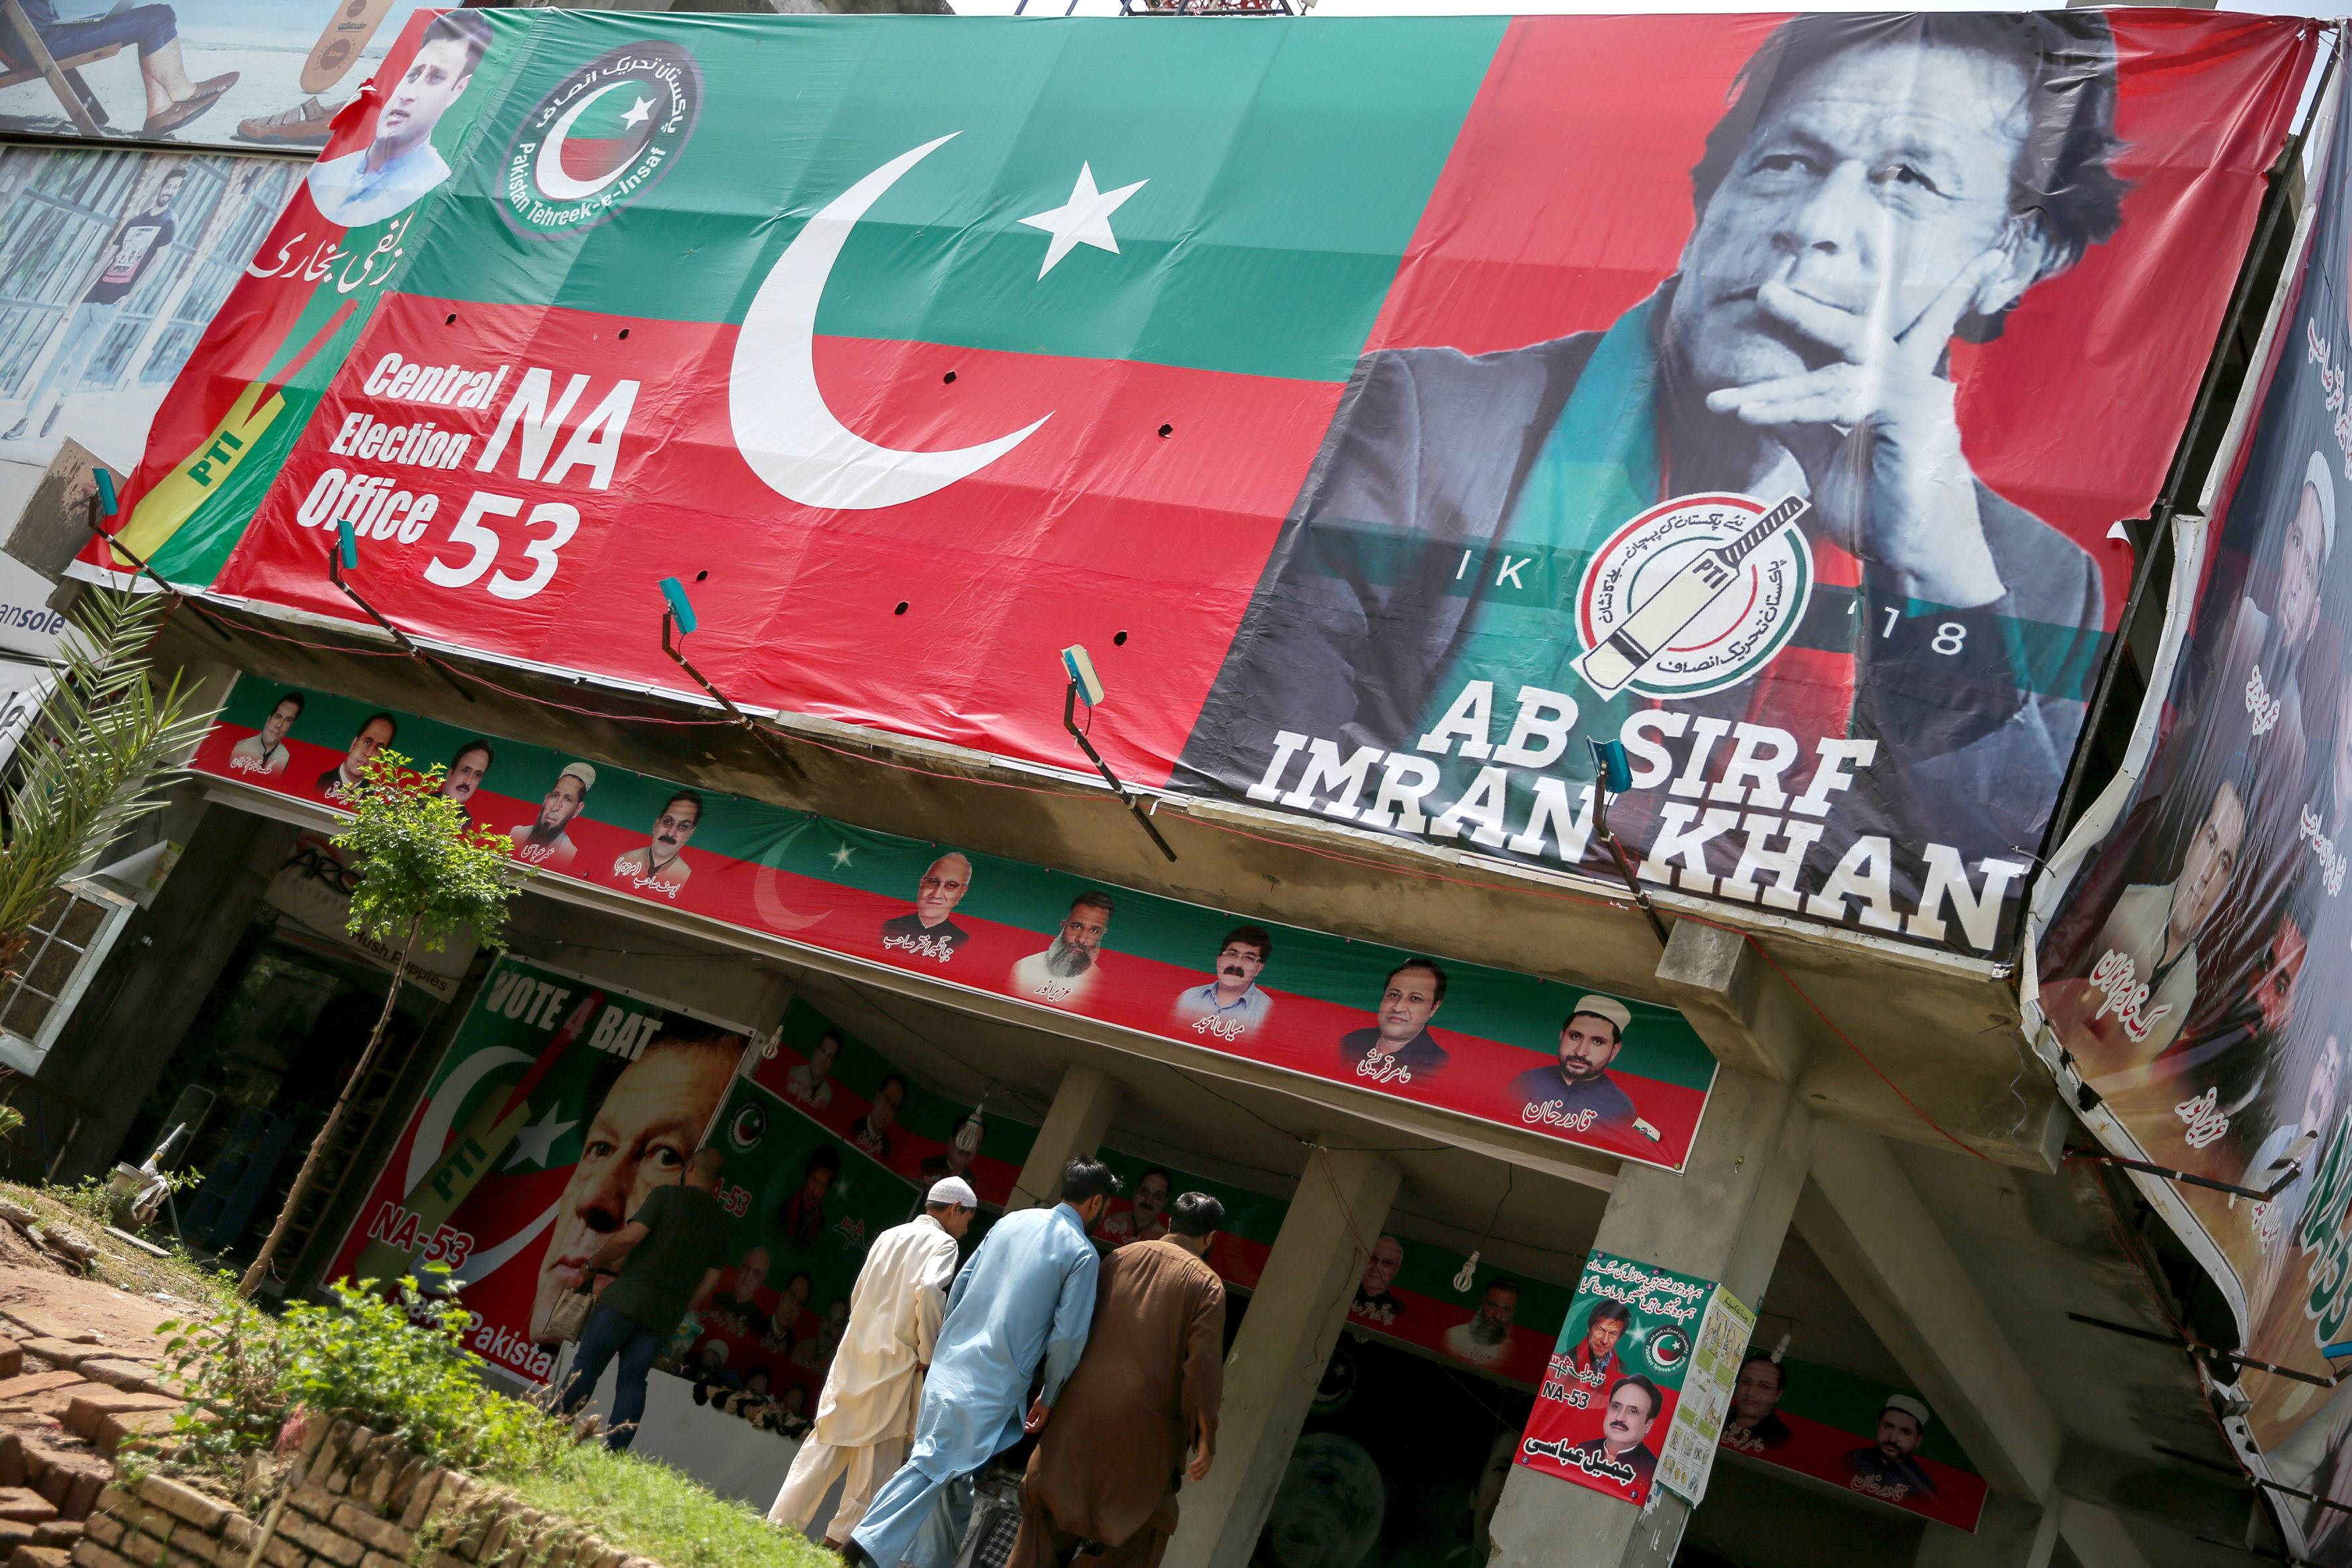 People walk past an image of cricket star-turned-politician Imran Khan, chairman of Pakistan Tehreek-e-Insaf (PTI) at a market in Islamabad